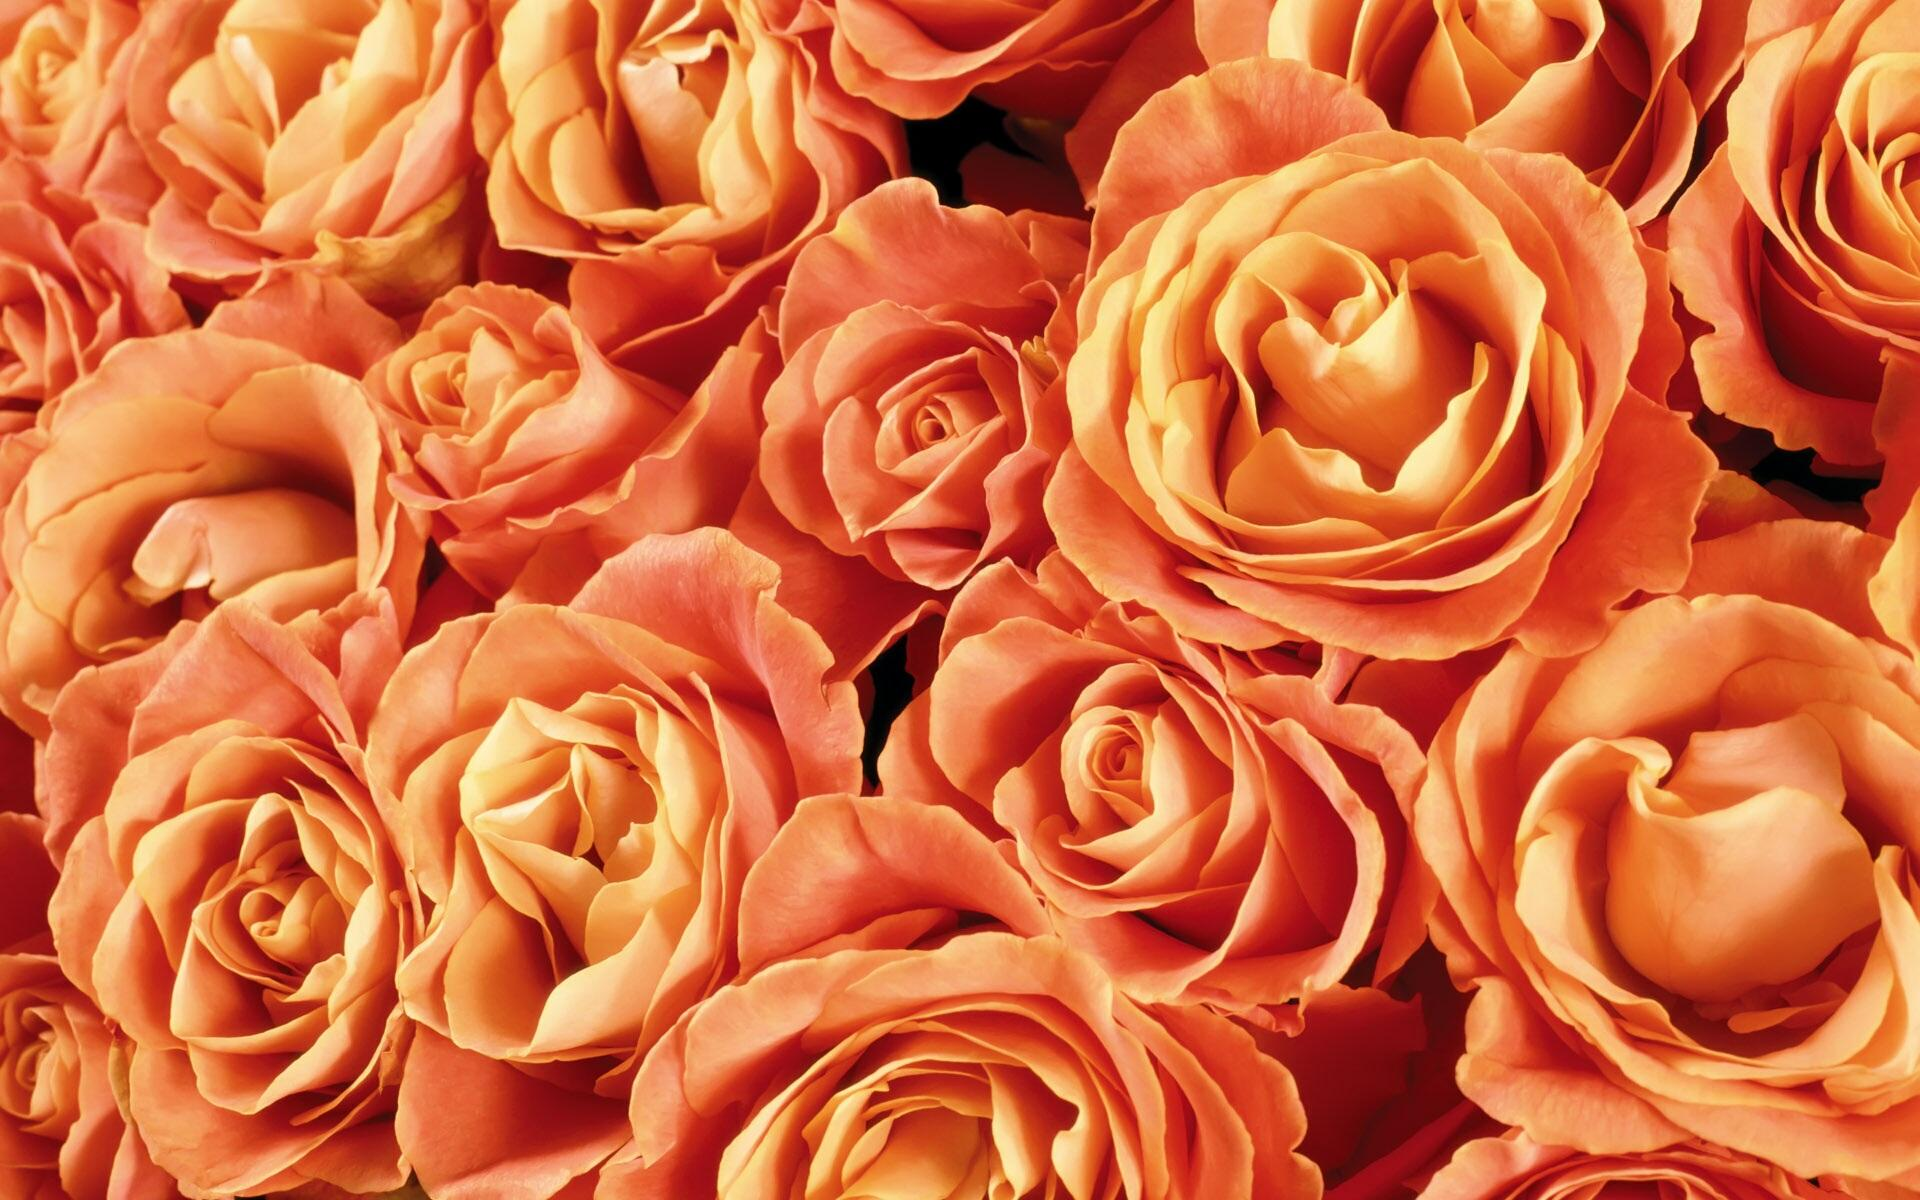 Orange roses backgrounds wallpaper high definition for The meaning of orange roses